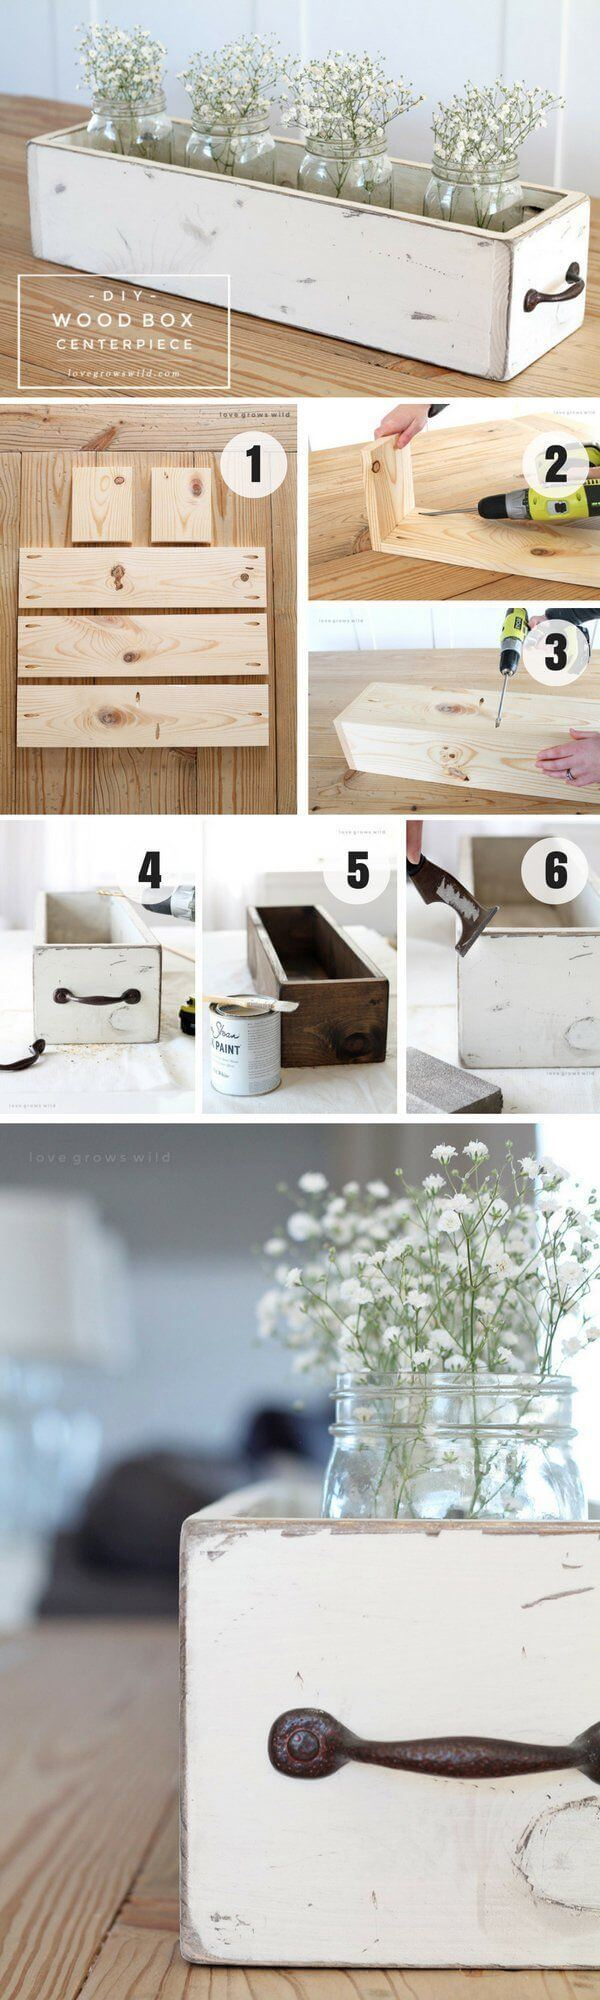 Drawer Transformed into Centerpiece Container